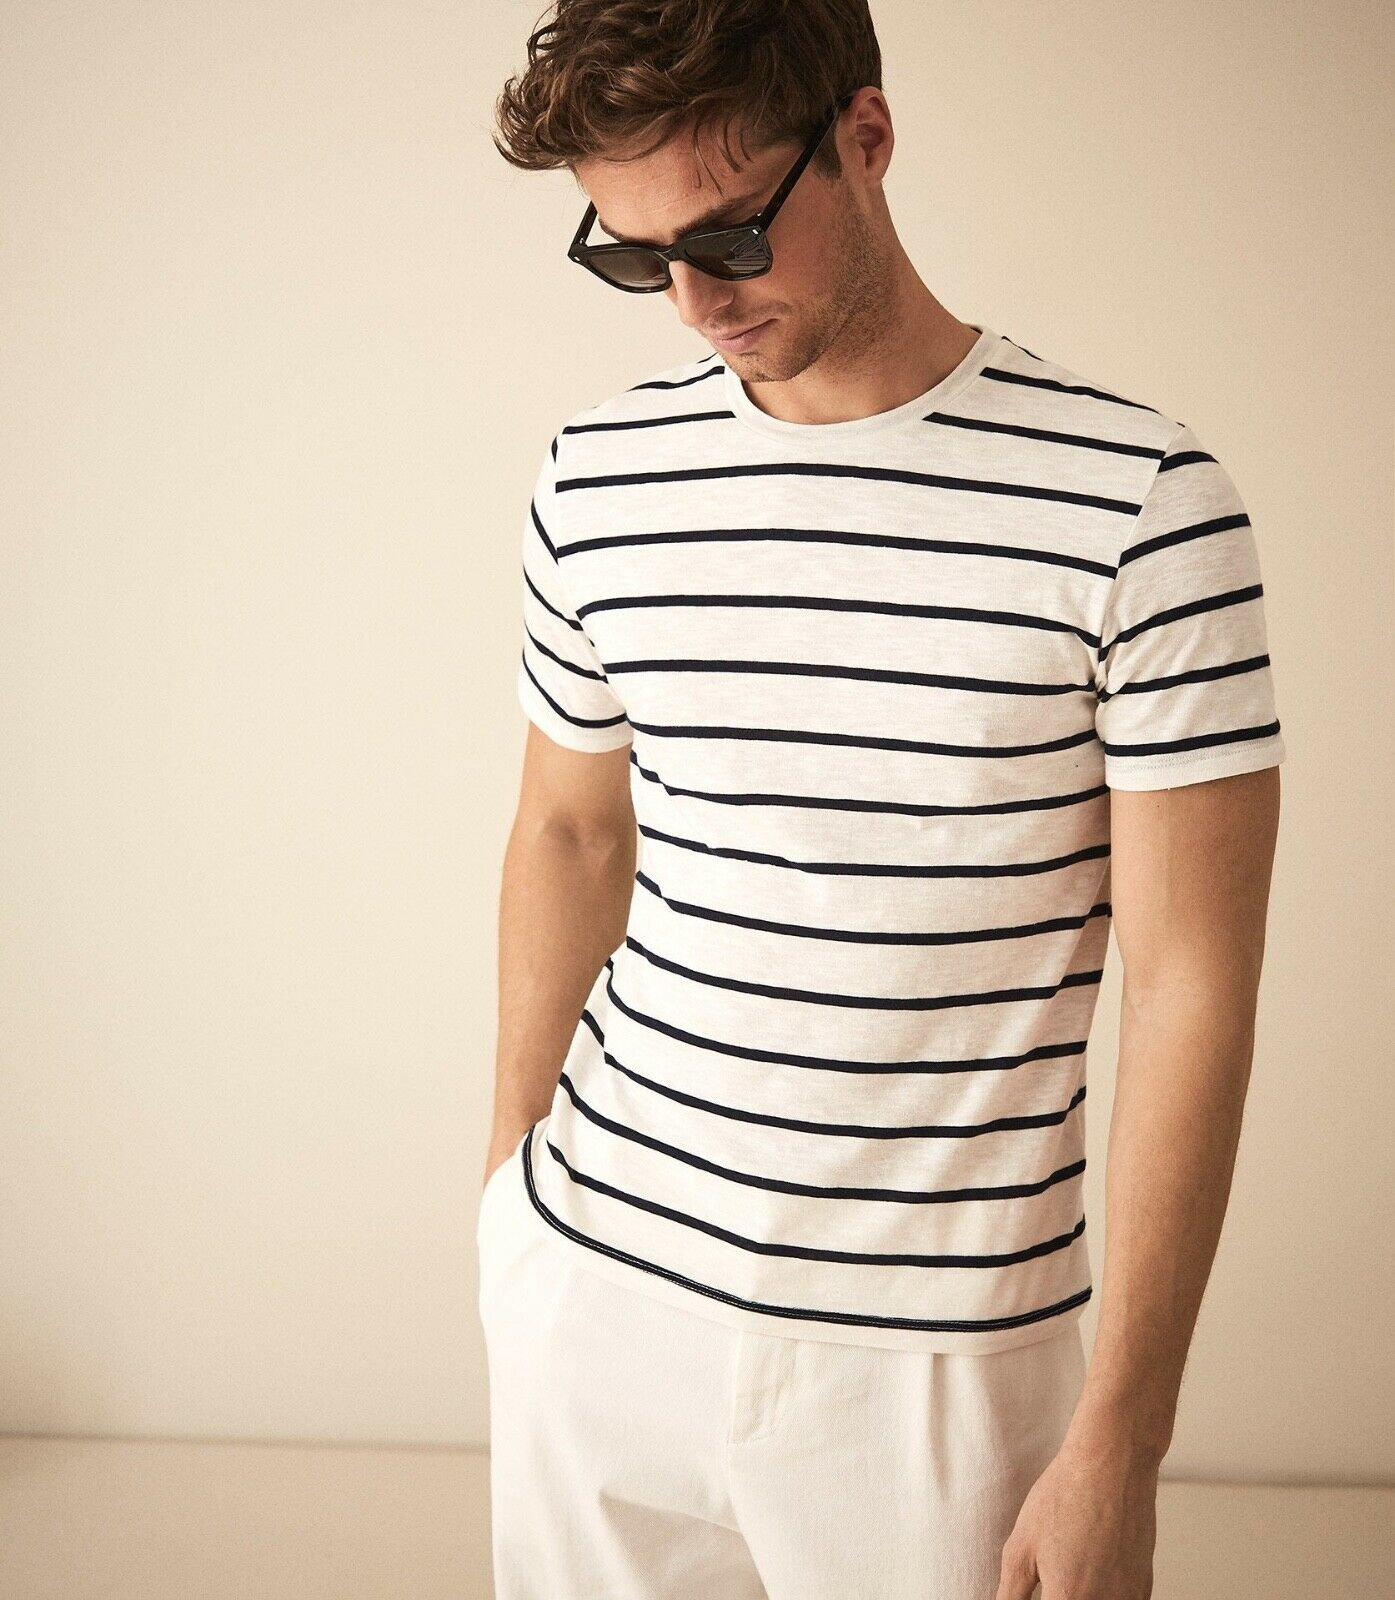 SM077 Ex Chainstore Denby Ecru Navy Striped Tee x12